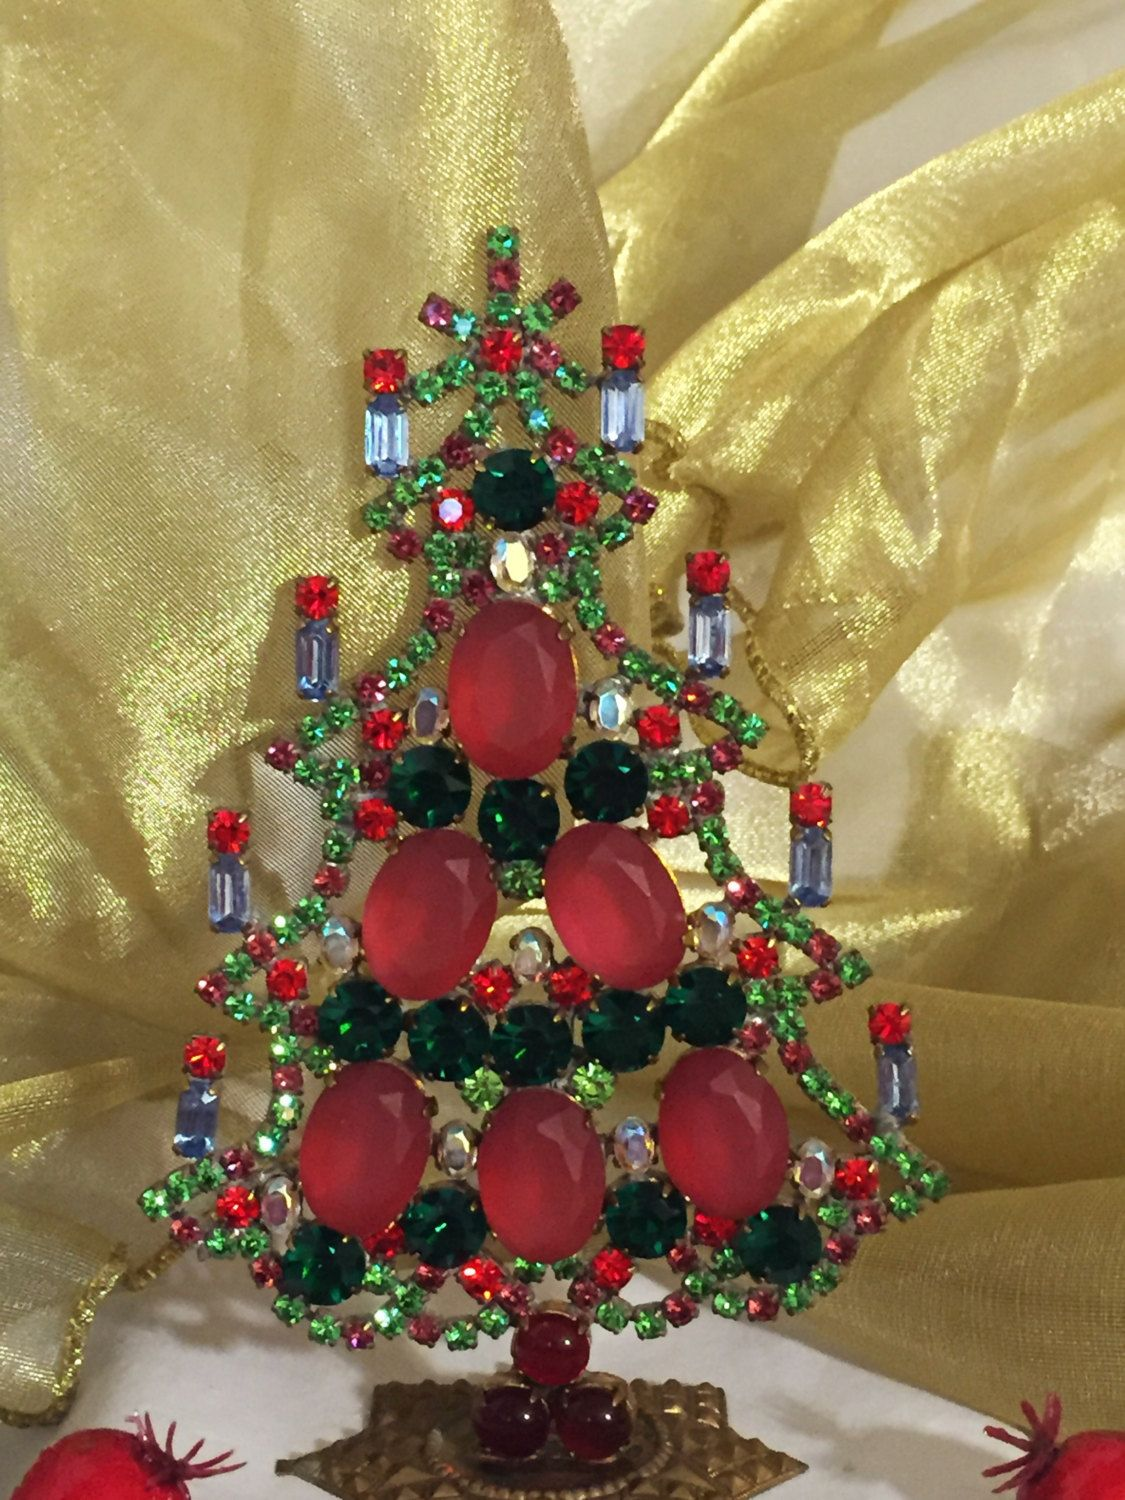 Exceptional Husar D Vintage Czech Crystal and Rhinestone Christmas Tree, Stand up tabletop holiday decoration  #411 by MeAndMoma on Etsy